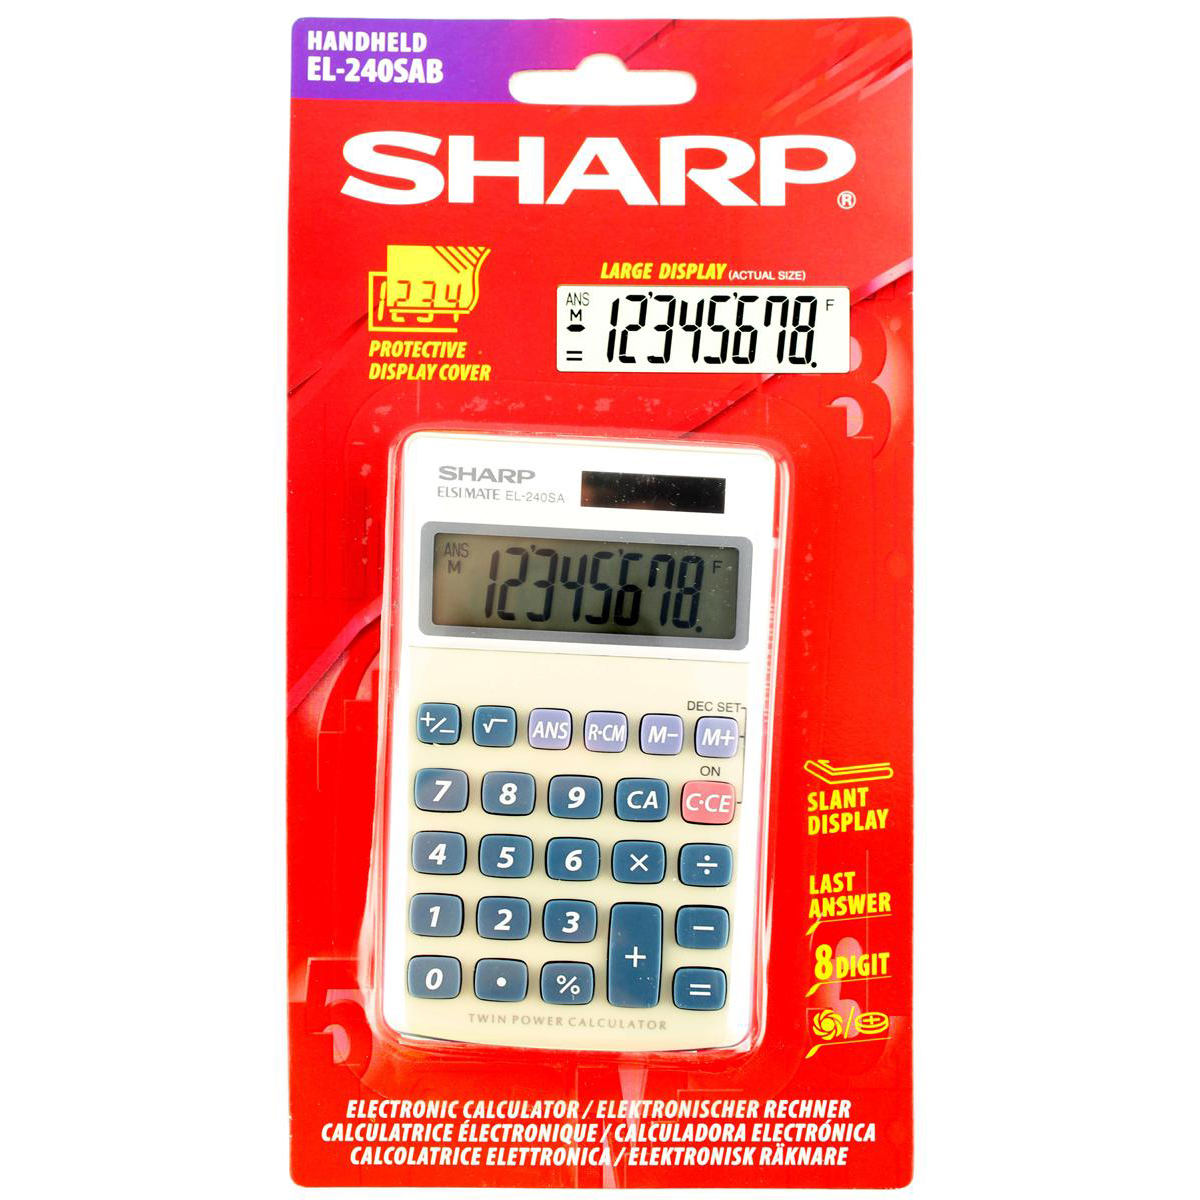 Handheld Calculator Sharp Handheld Calculator 8 Digit 3 Key Memory Solar and Battery Power 71x17x116mm Silver Ref EL240SAB